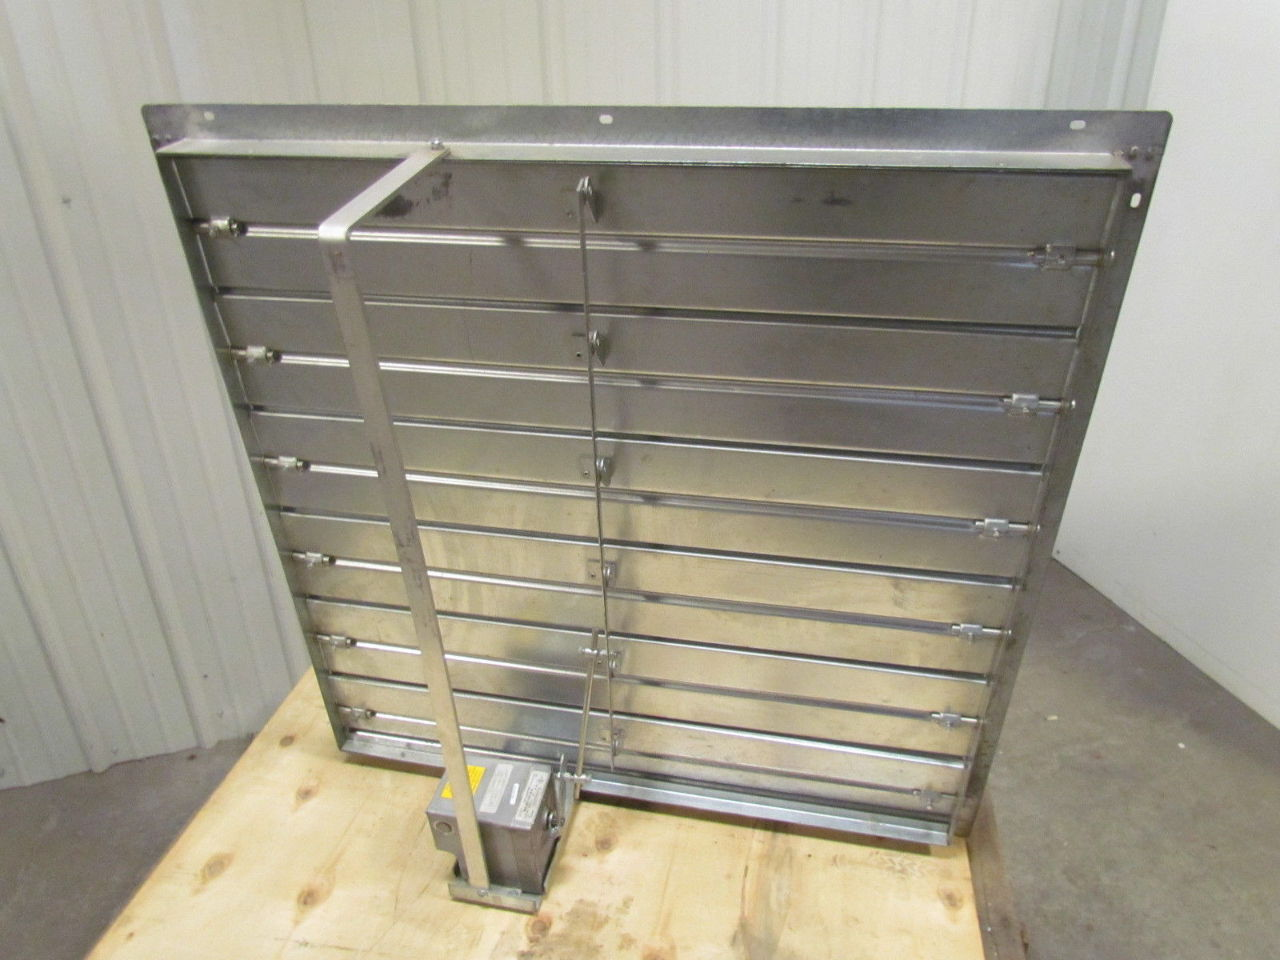 36 X36 Galvanized Steel Motorized Damper 120 240v 1ph Power Louvered Vent Ebay